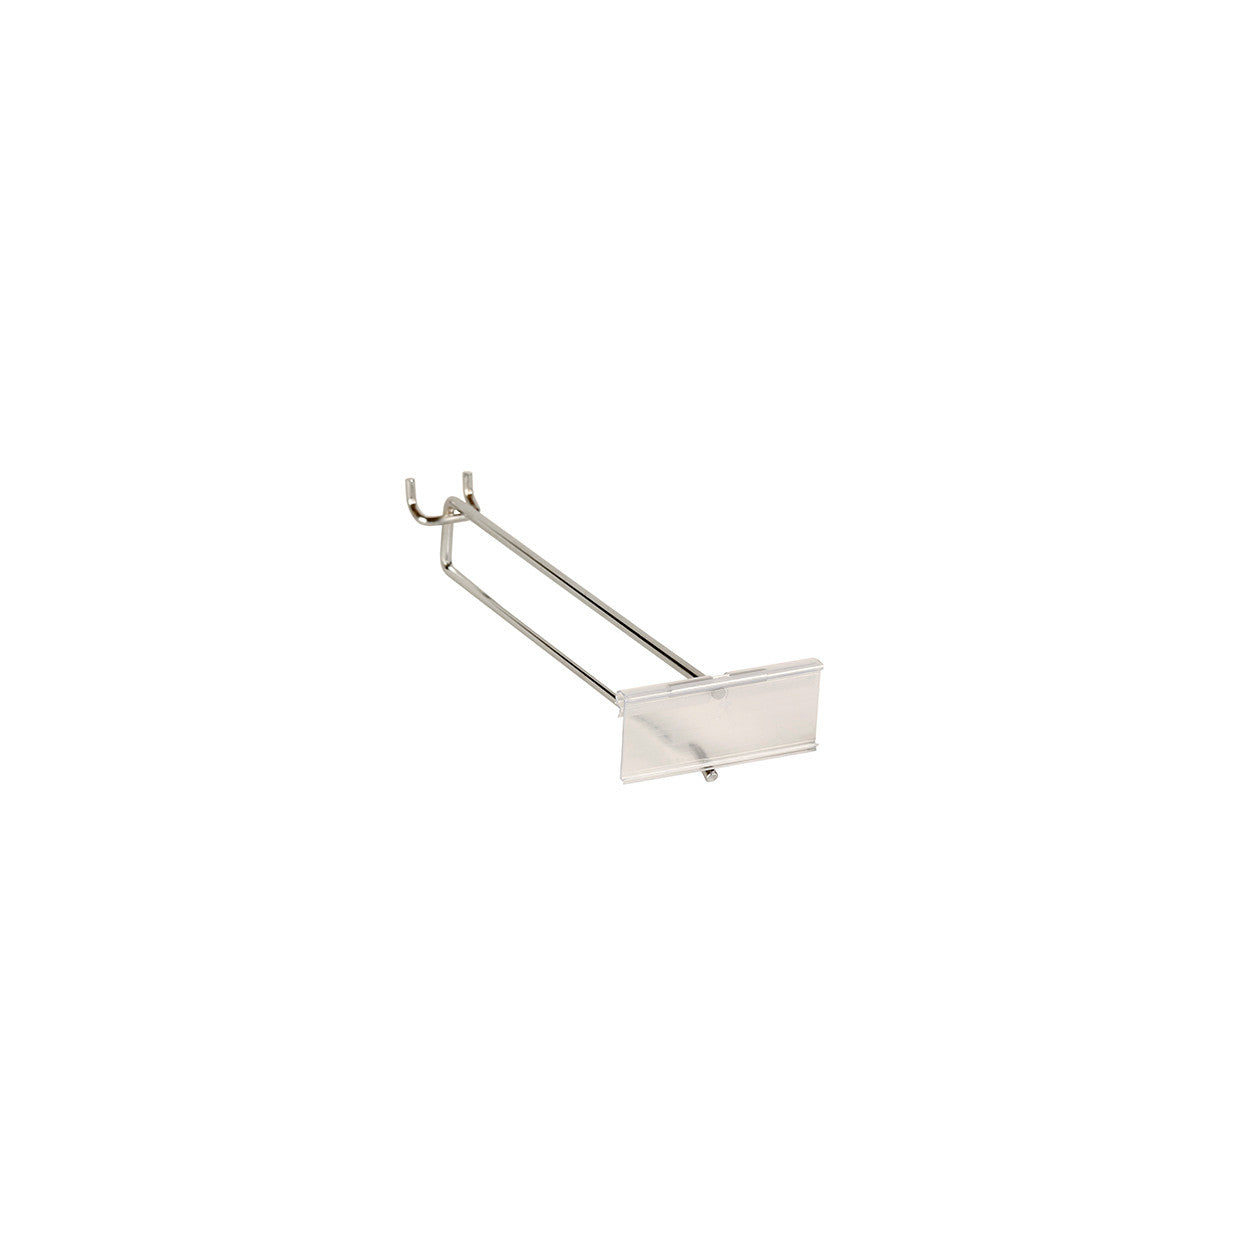 Slatwall / Pegboard Hook with 80mm x 26 mm Flipper Scan Plate (225mm L x 5mm DIA)